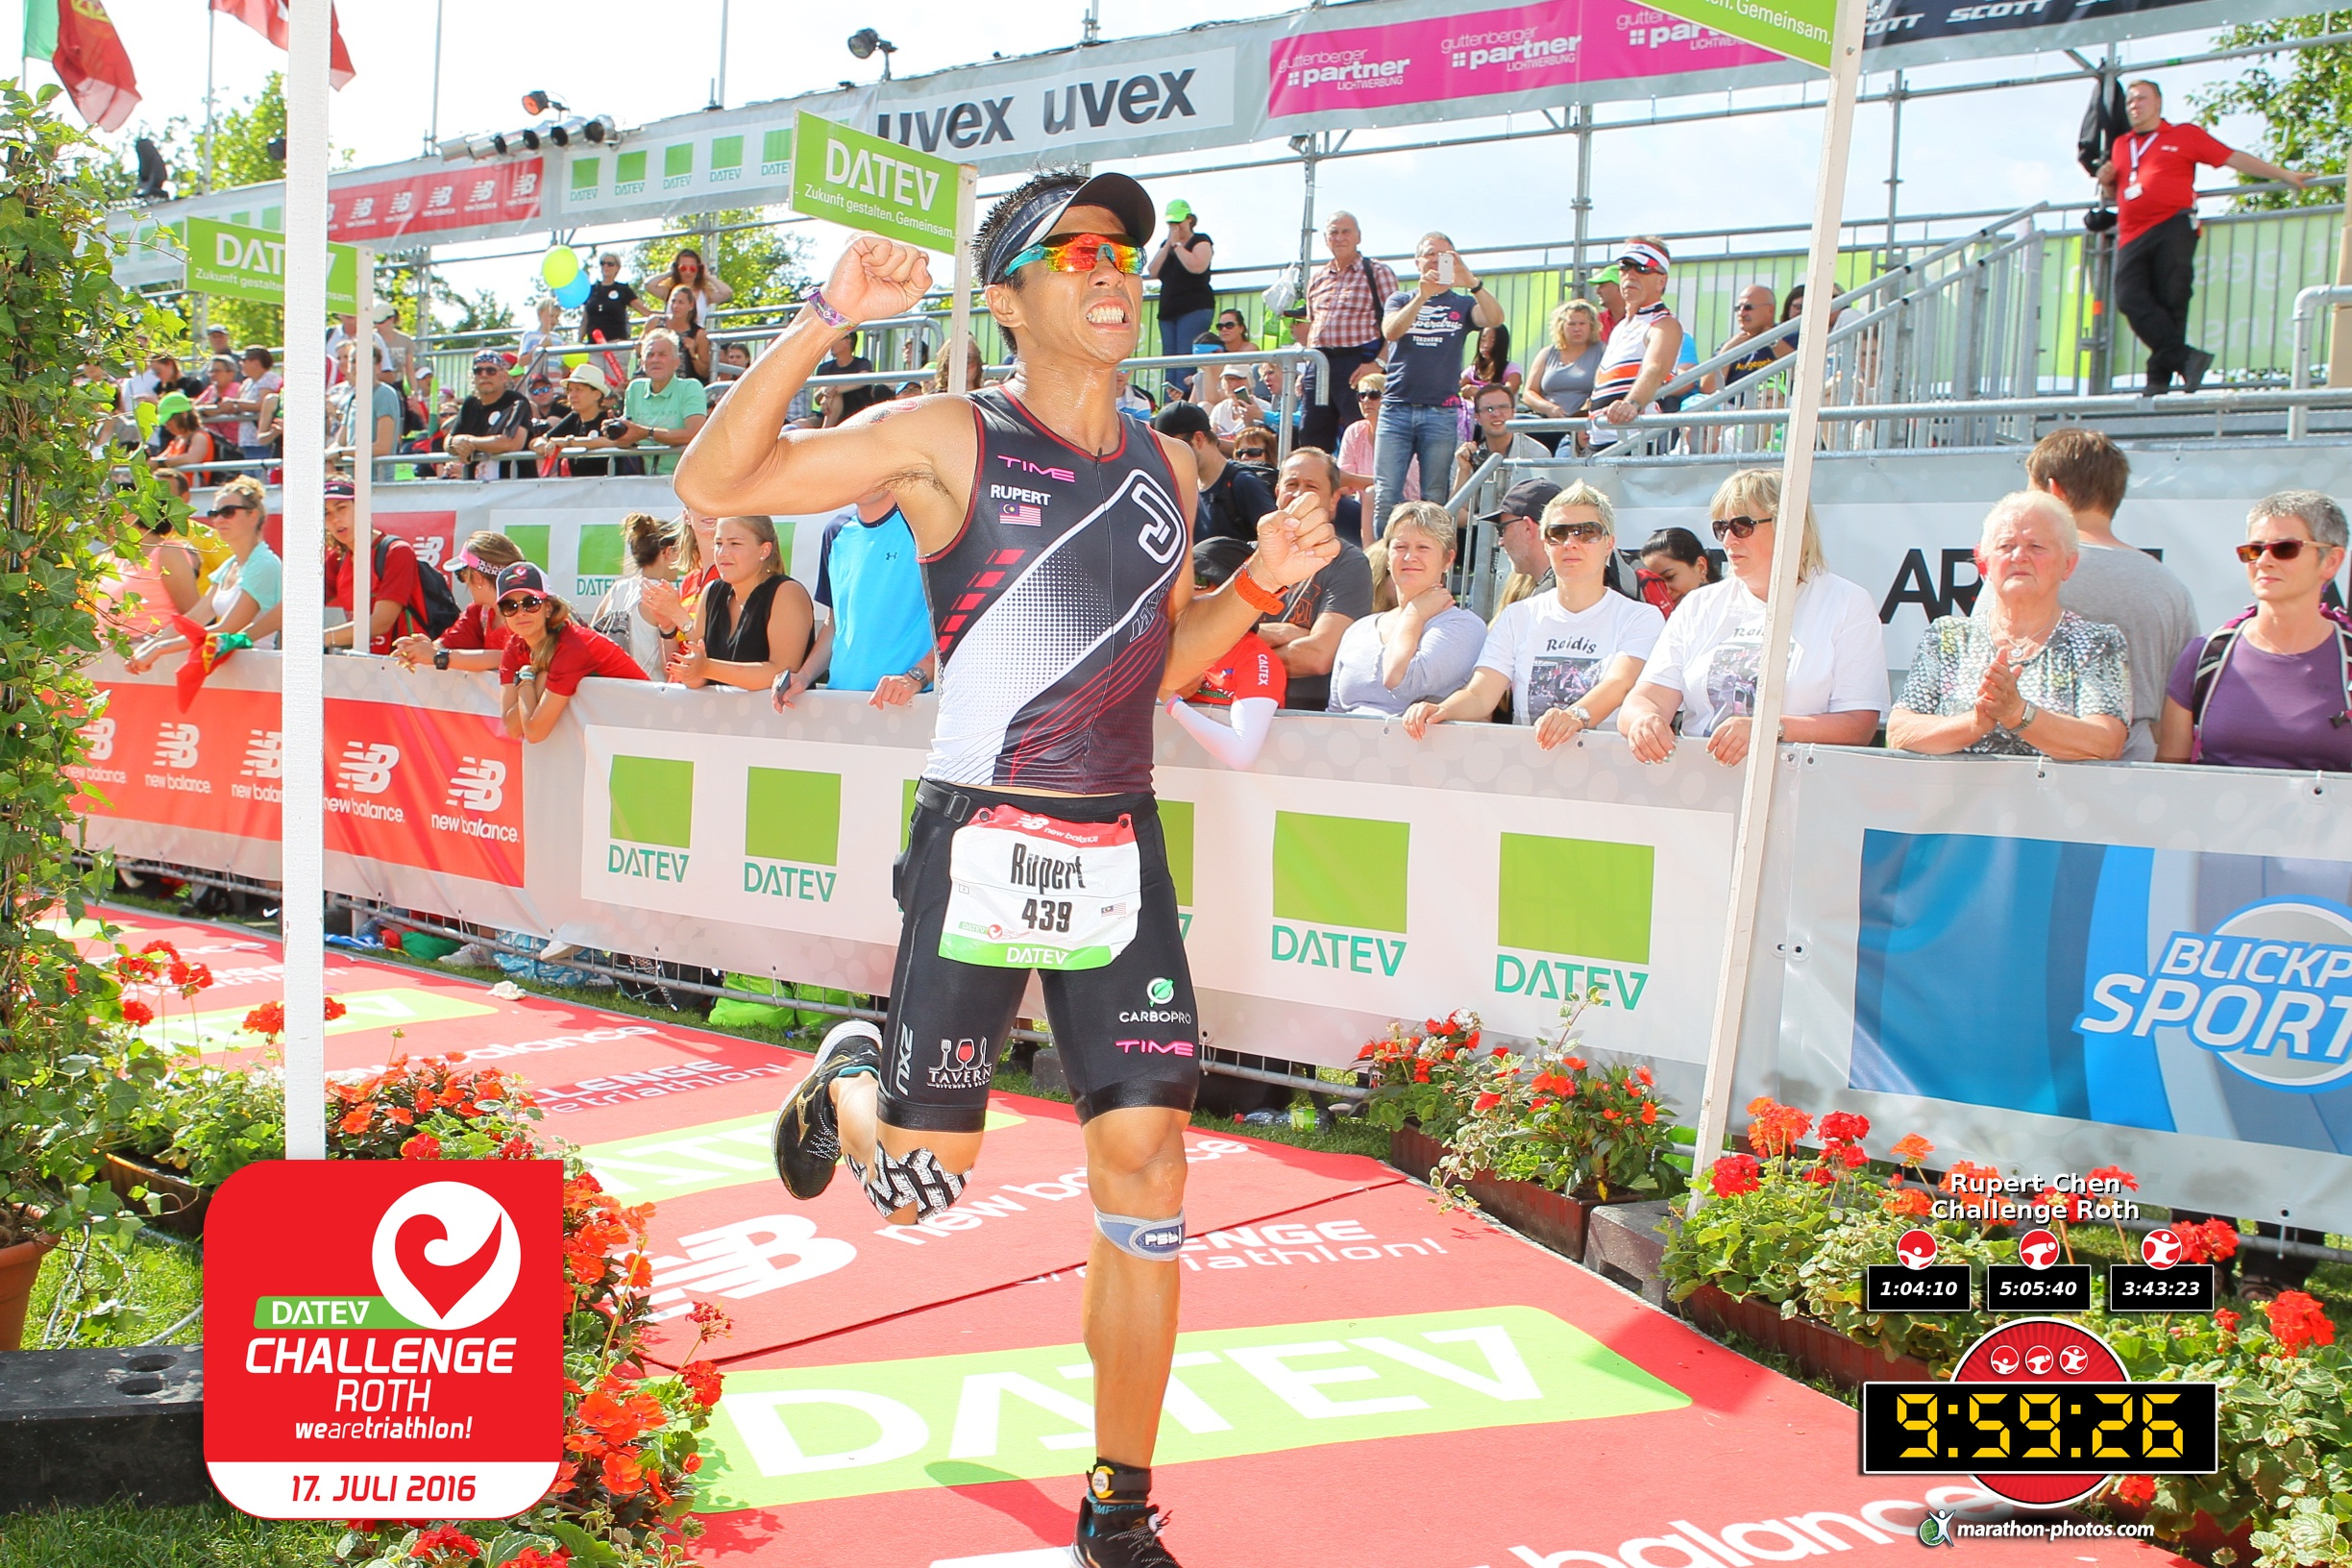 Rupert pushed his physical limits racing with an injured knee at Challenge Roth, Germany. (ChallengeRoth)